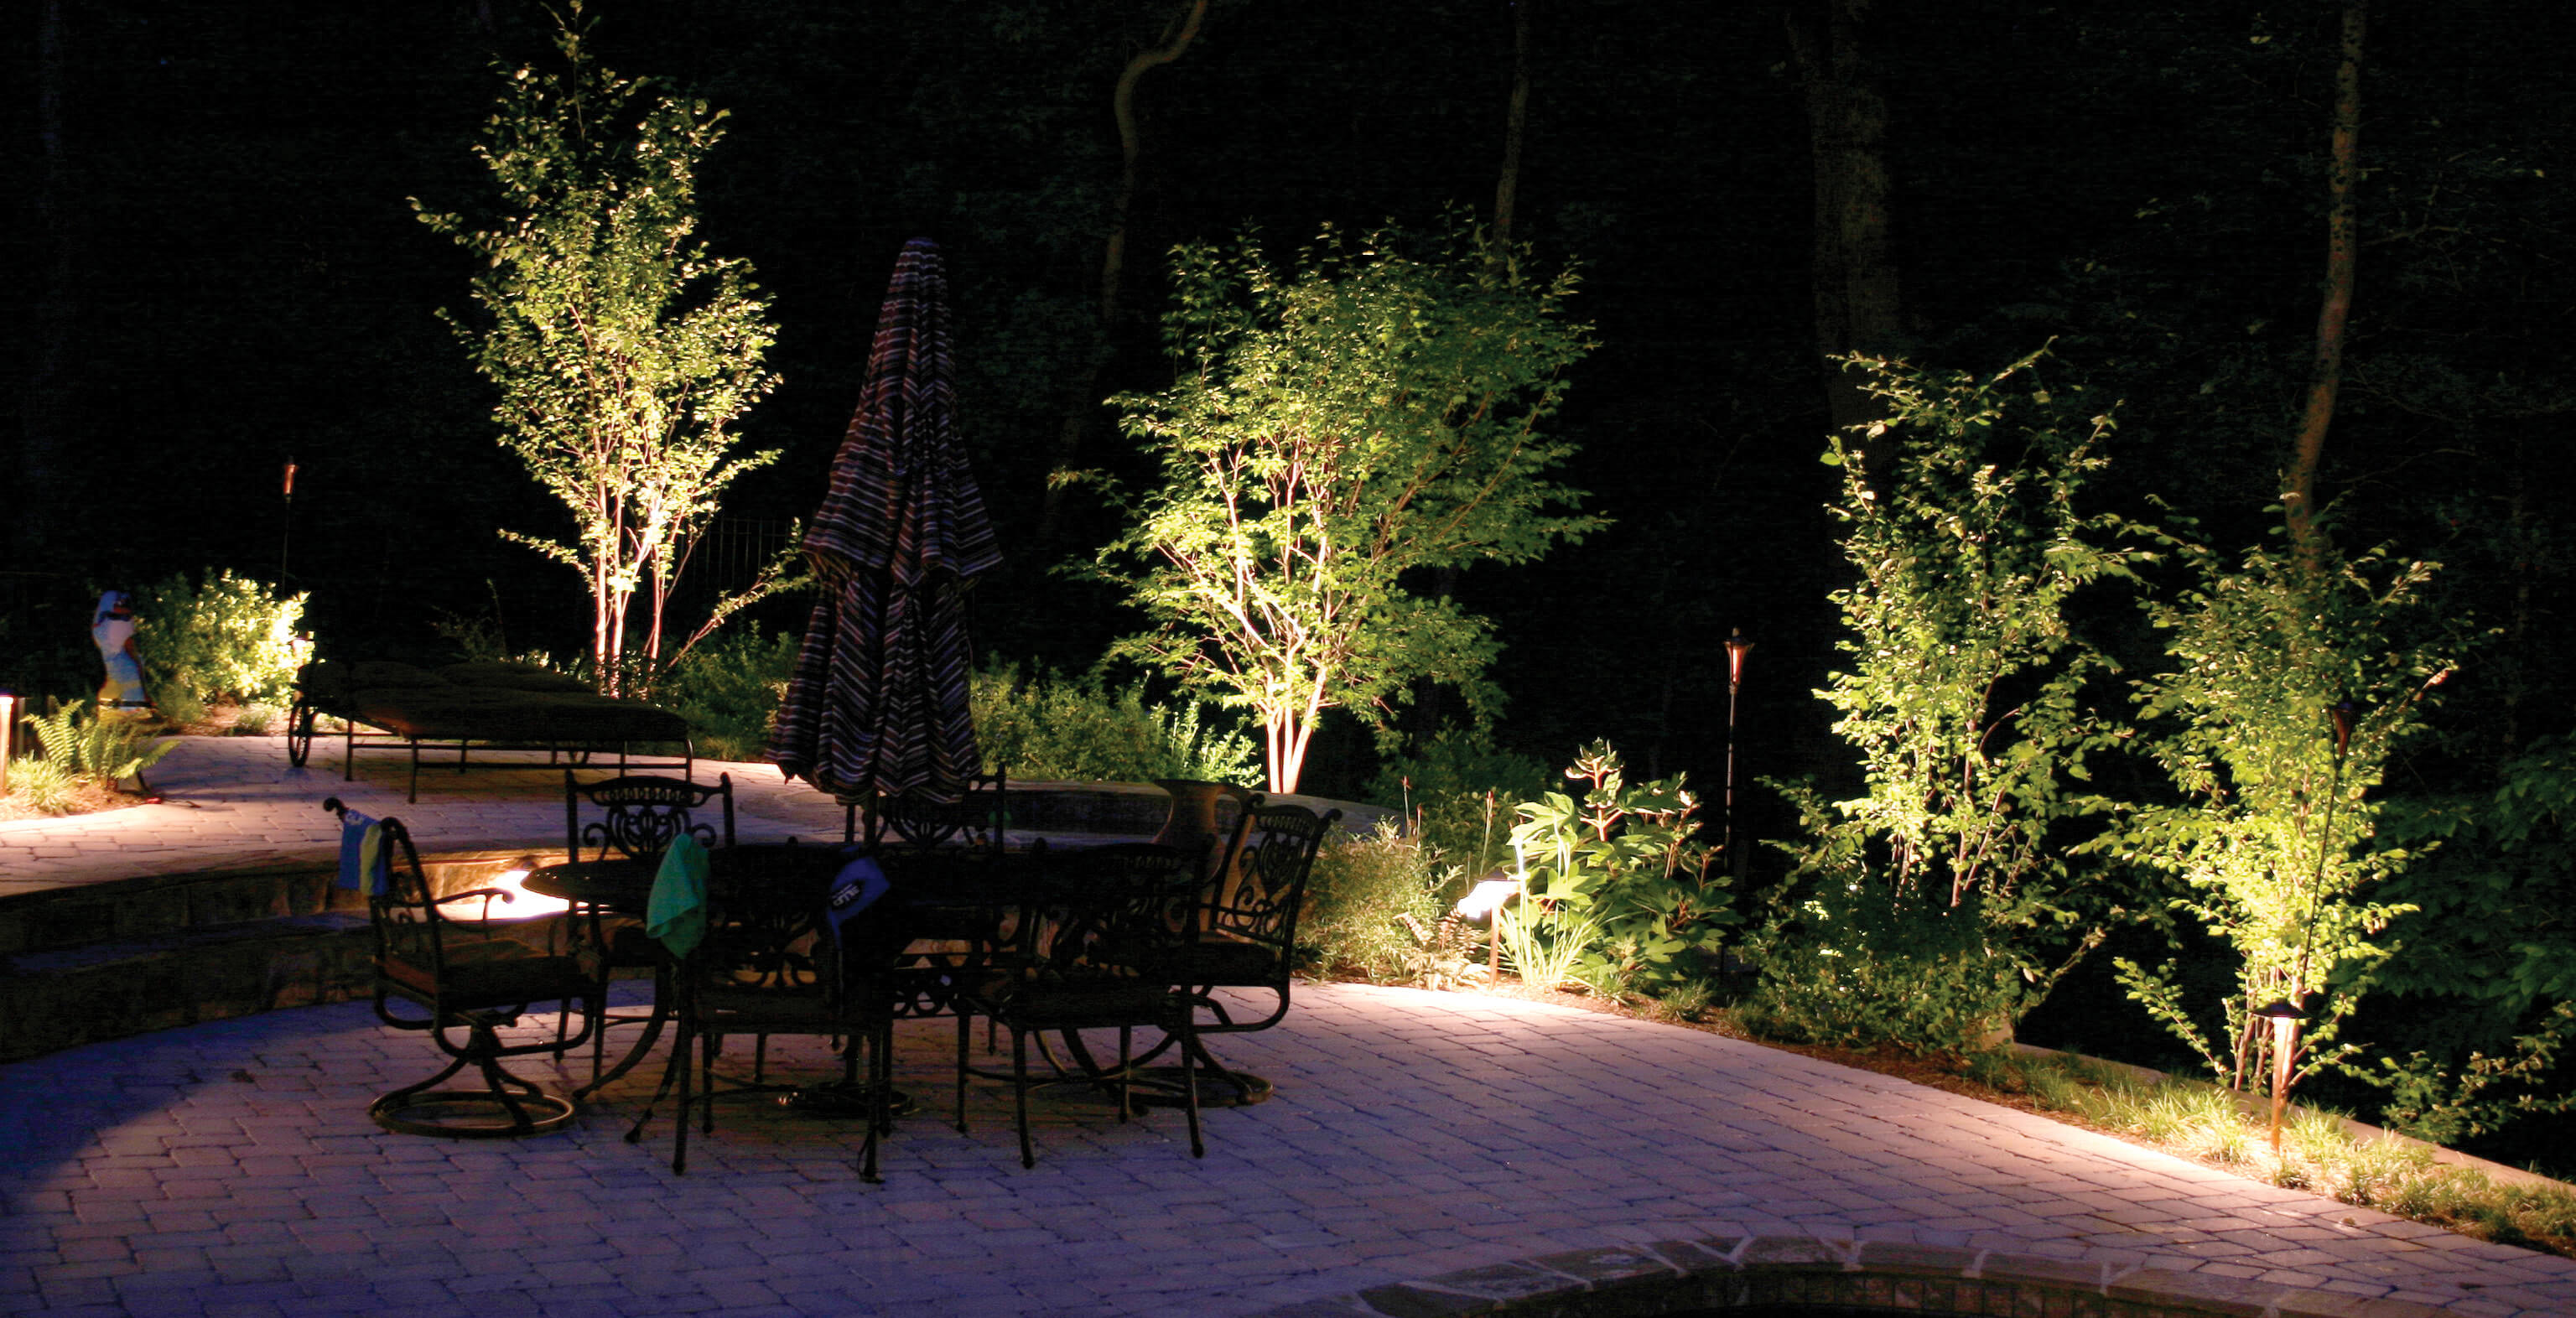 Outdoor seating area with lighting